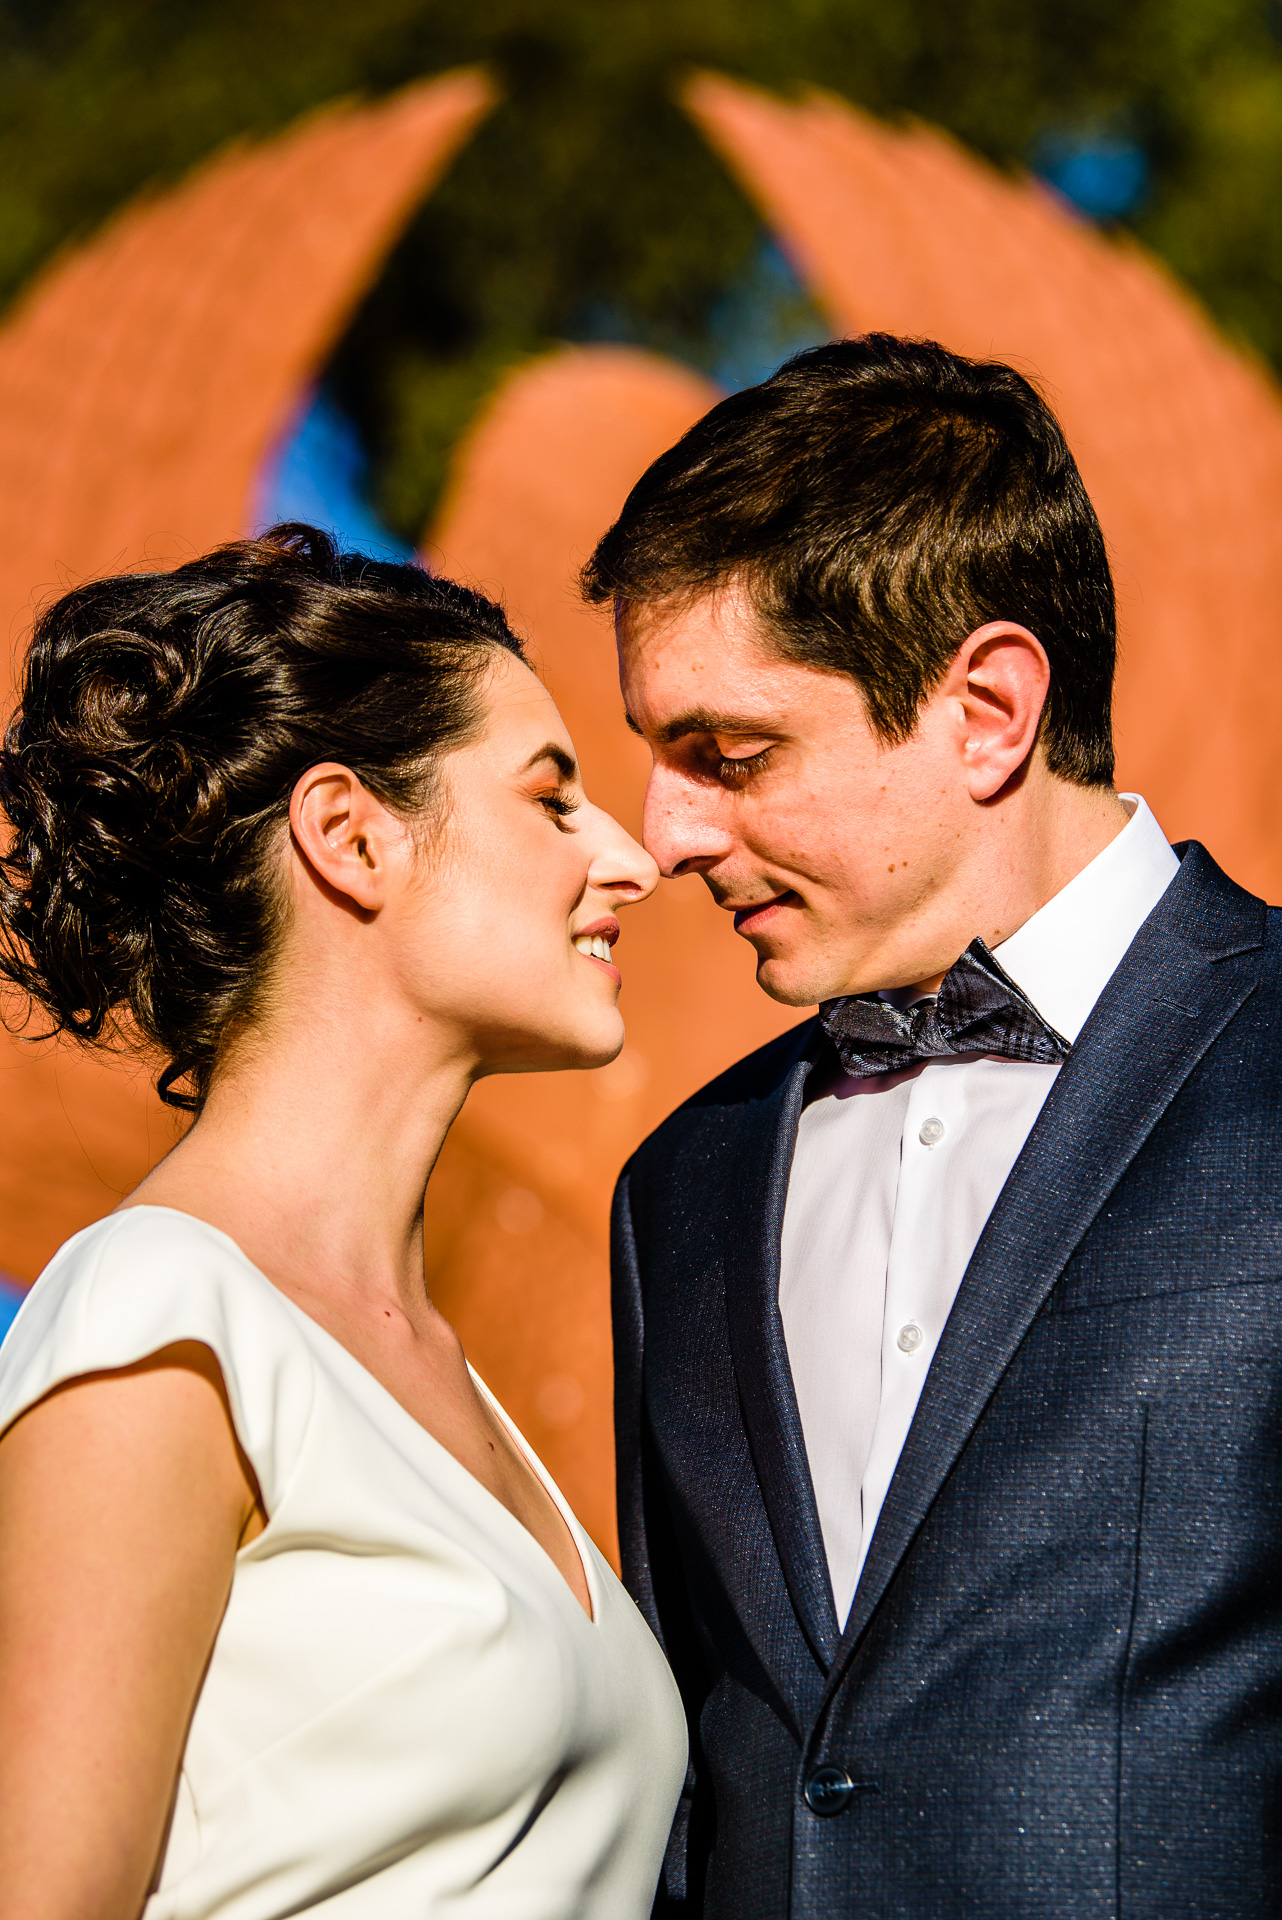 12.29.17 - Michelle and Tommaso Wedding - San Diego Courthouse -  Paul Douda Photography - 055.jpg